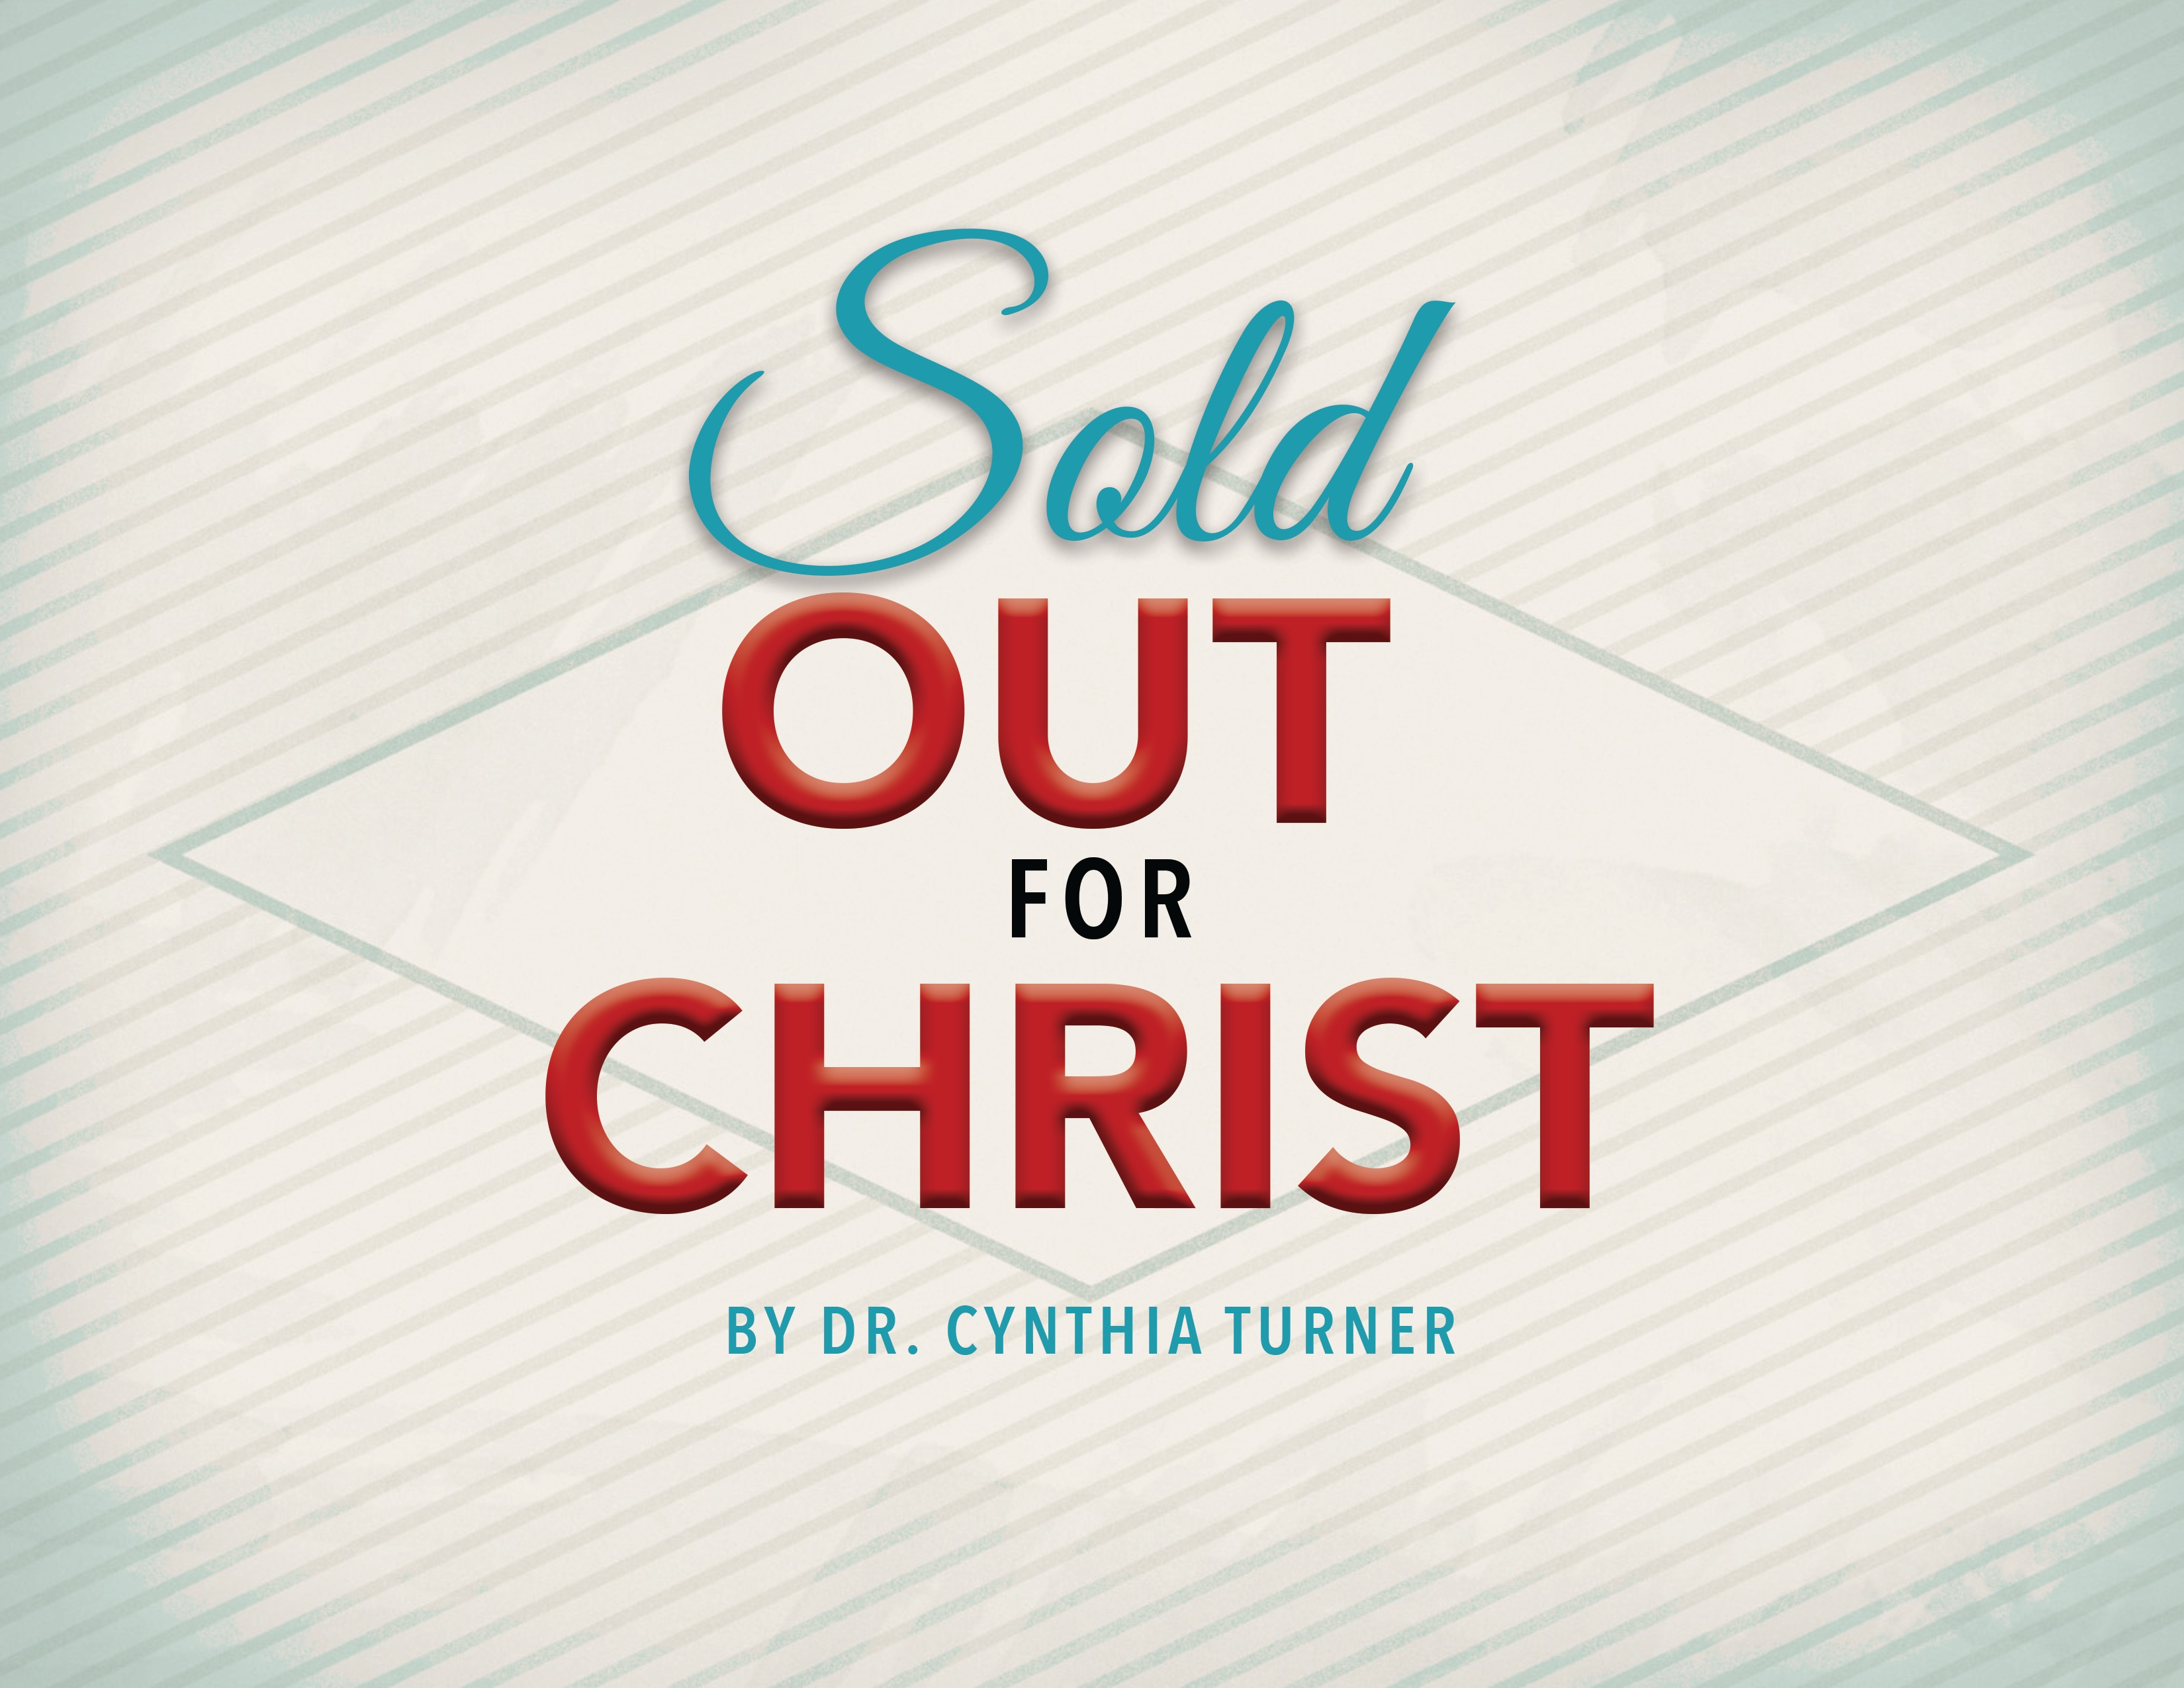 Sold Out for Christ